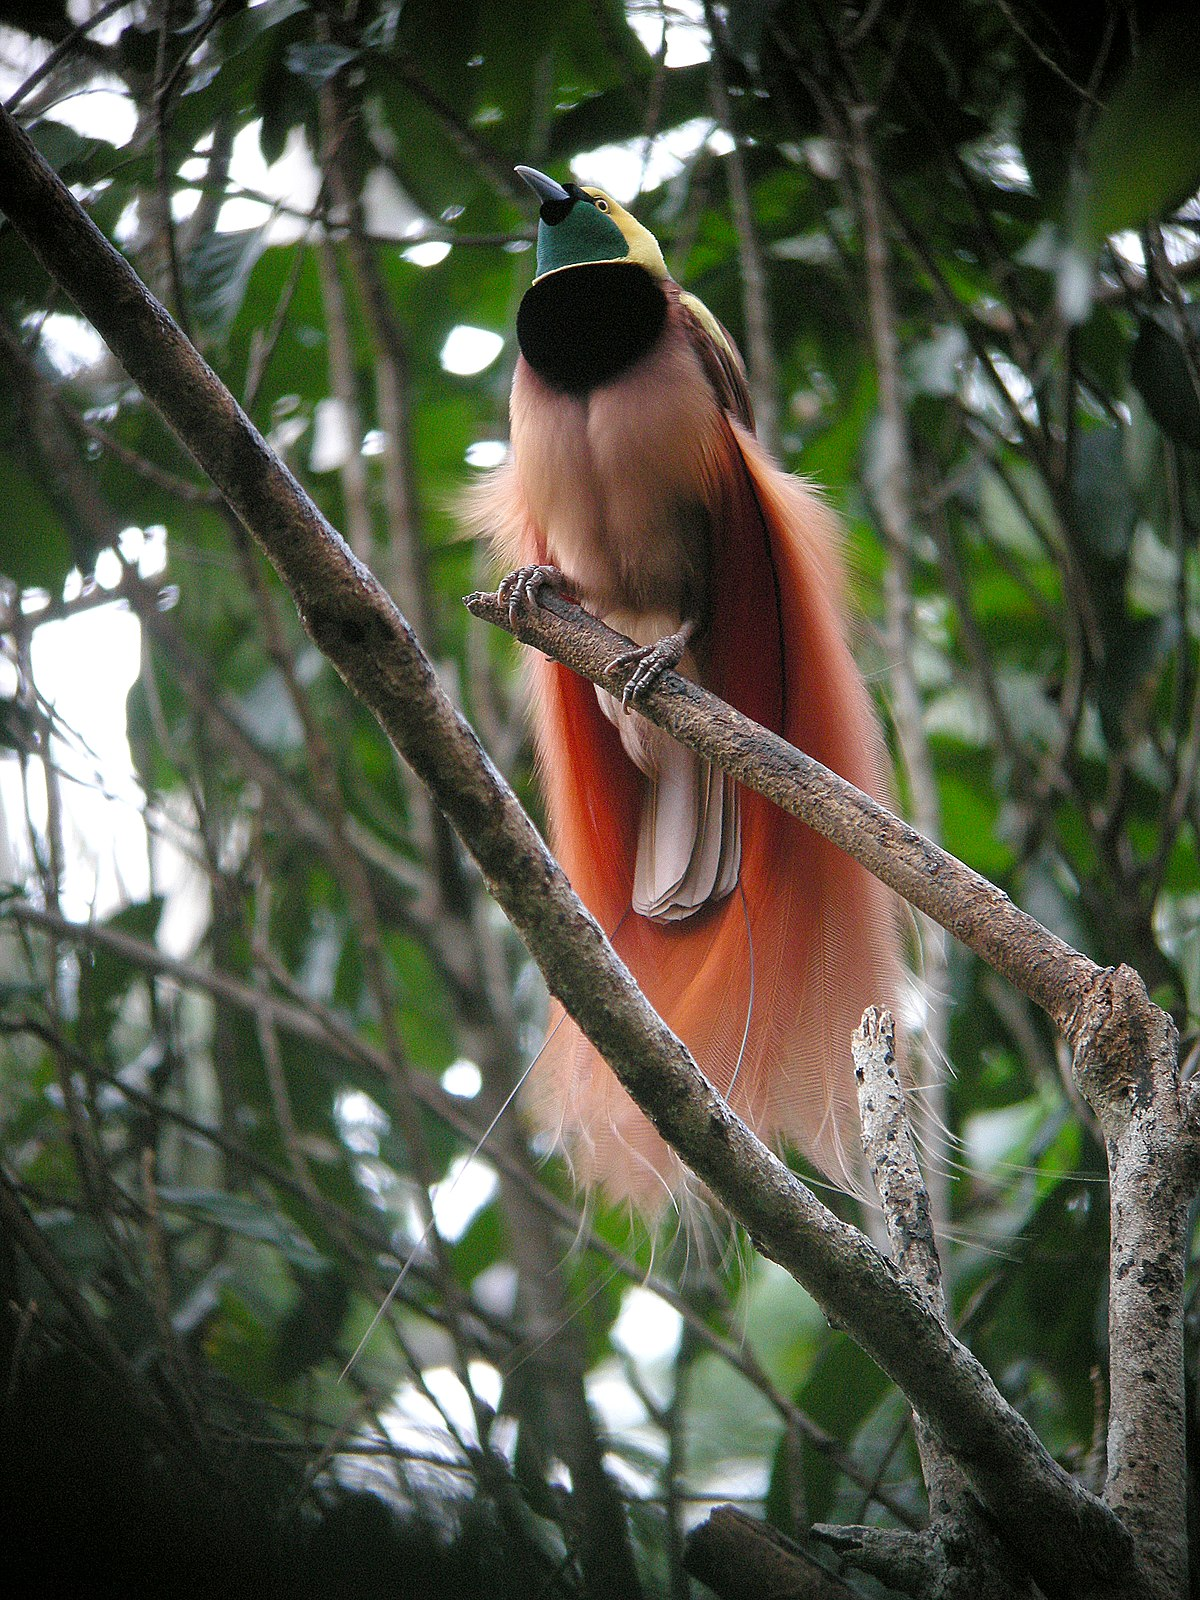 Bird-of-paradise - Wikipedia